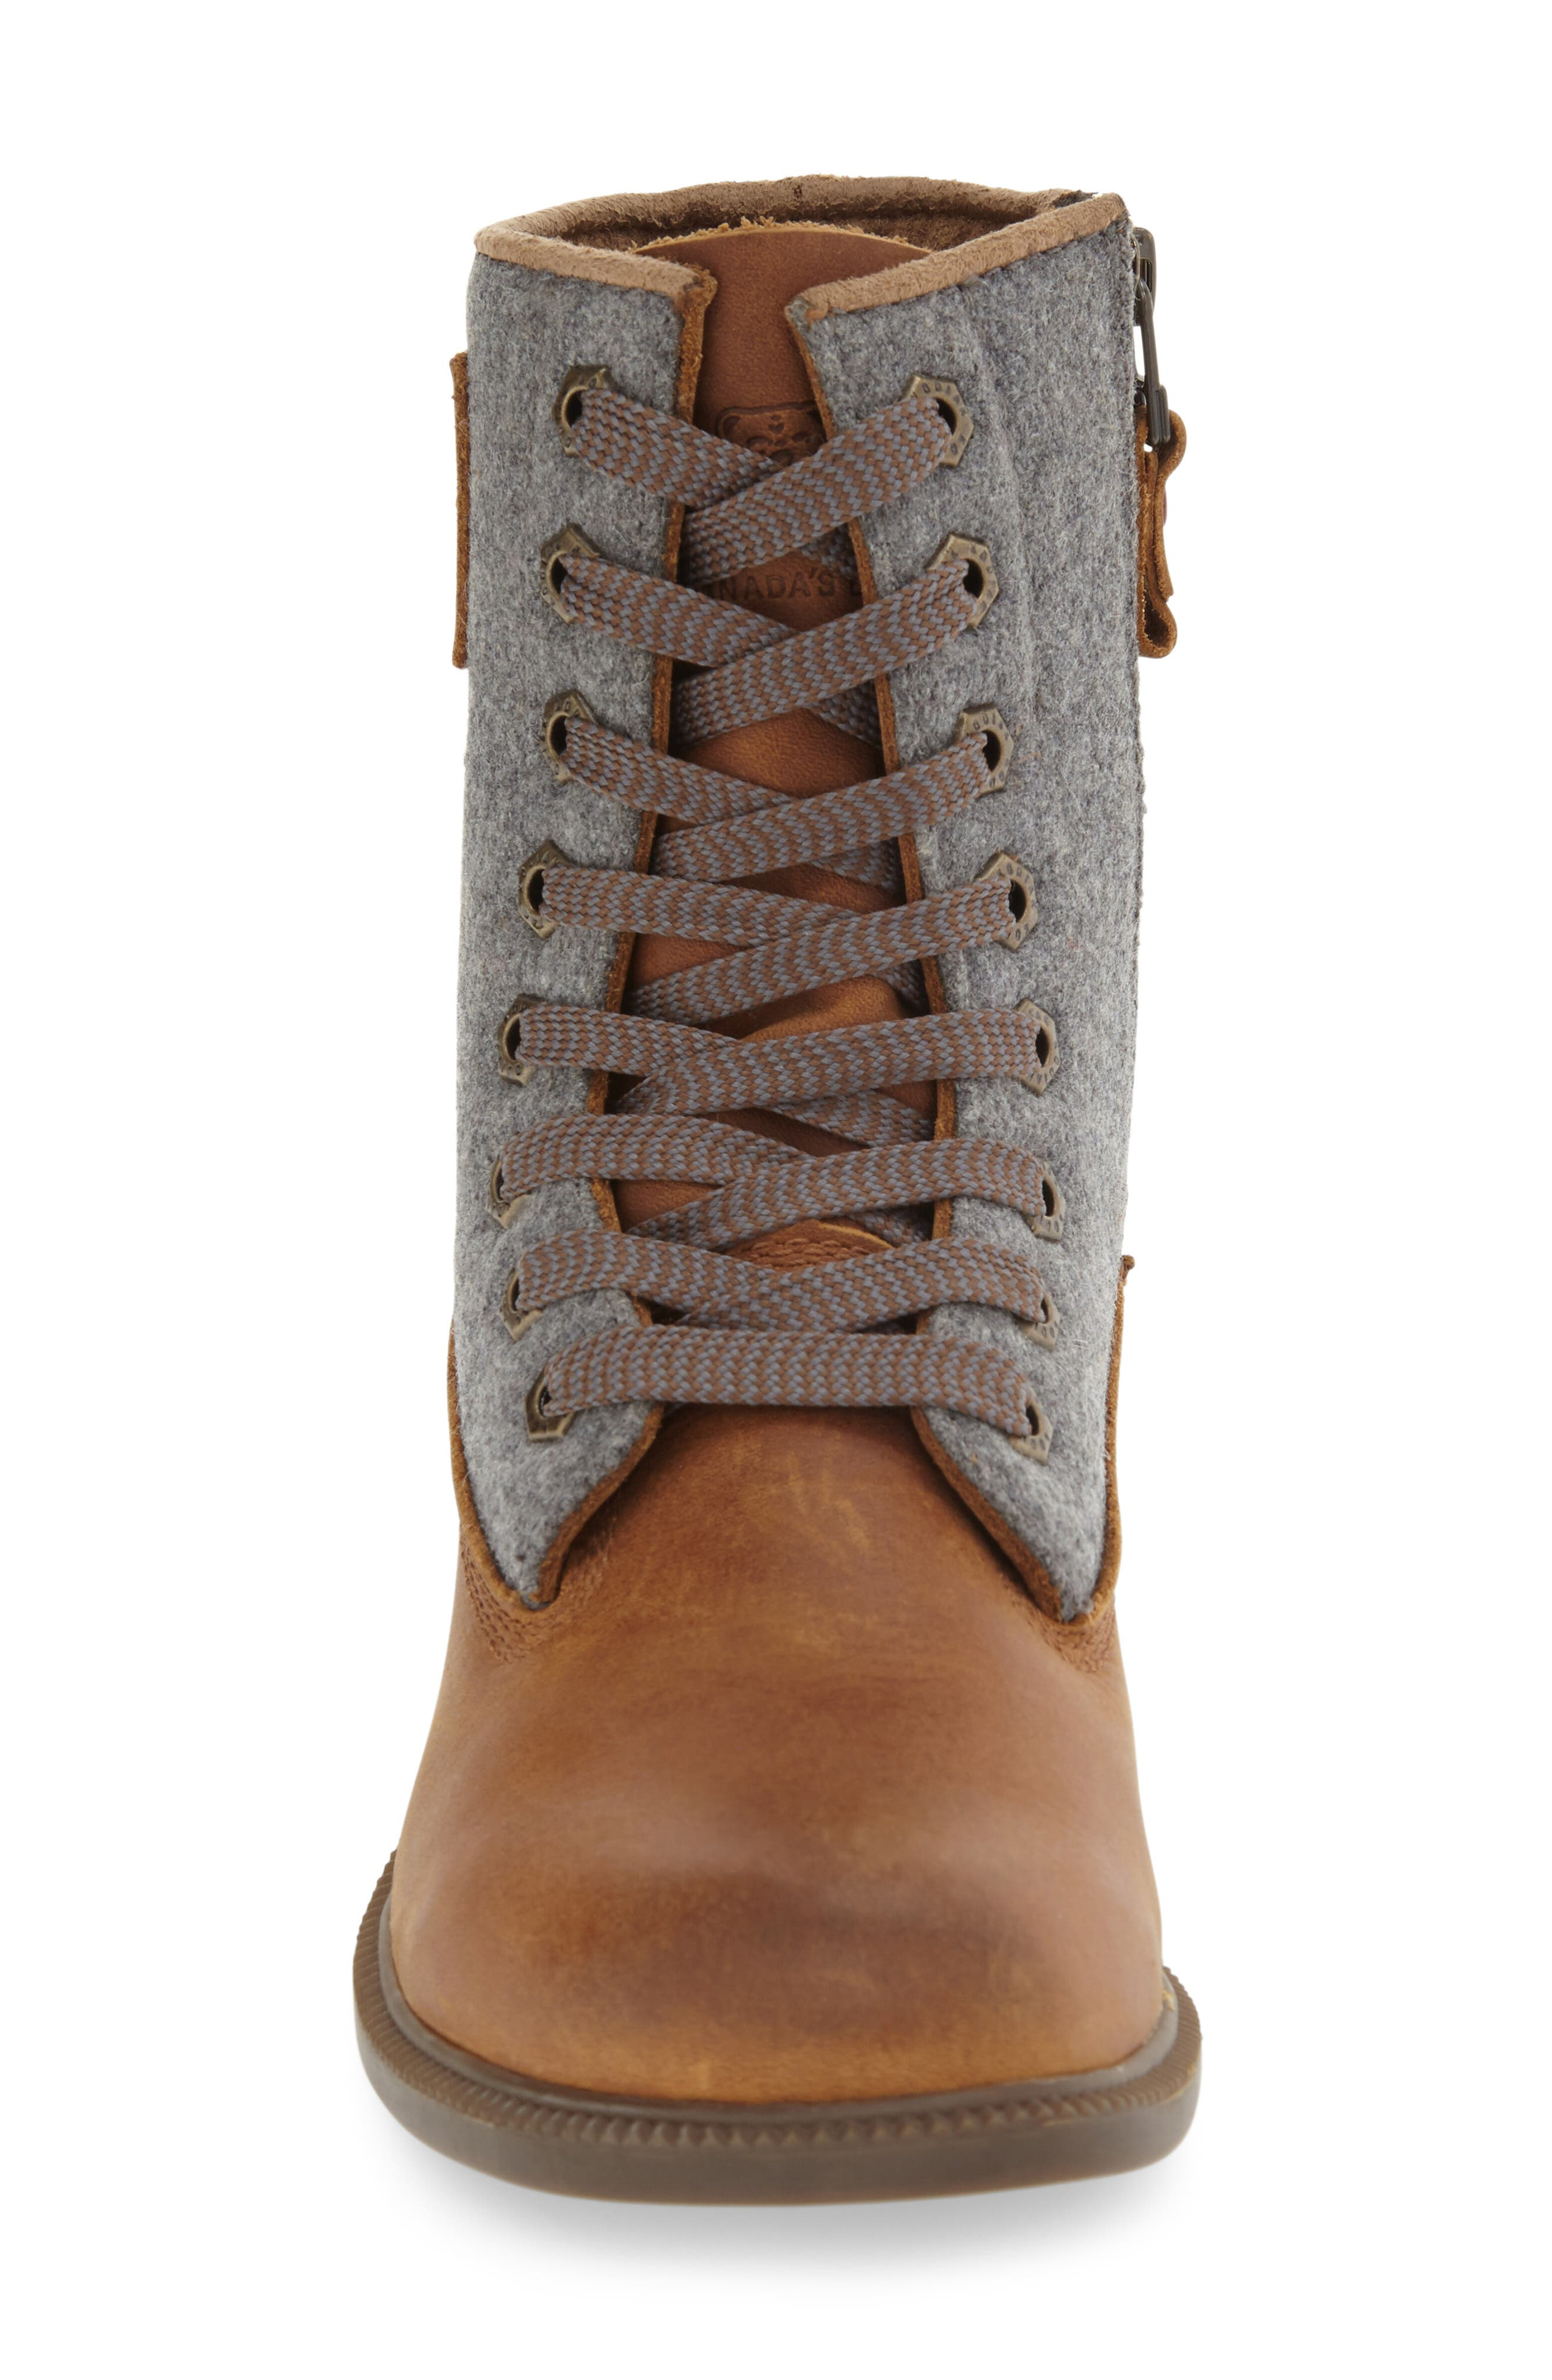 'Addison' Waterproof Insulated Zip Boot,                             Alternate thumbnail 3, color,                             Caramel/ Grey Leather